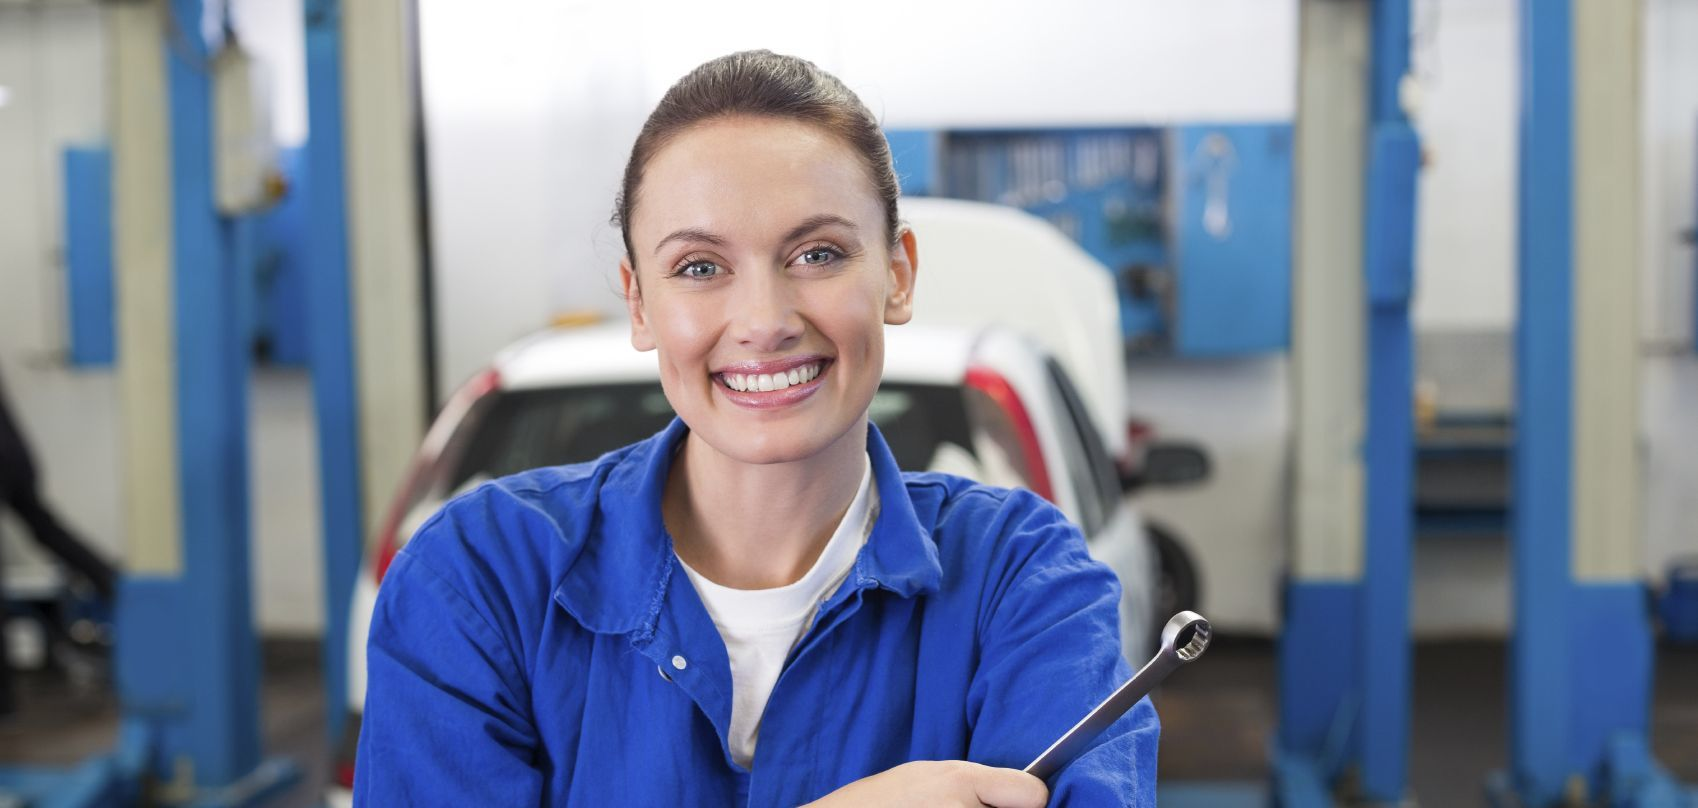 Oil Change Service near Canfield, OH - Sweeney Service